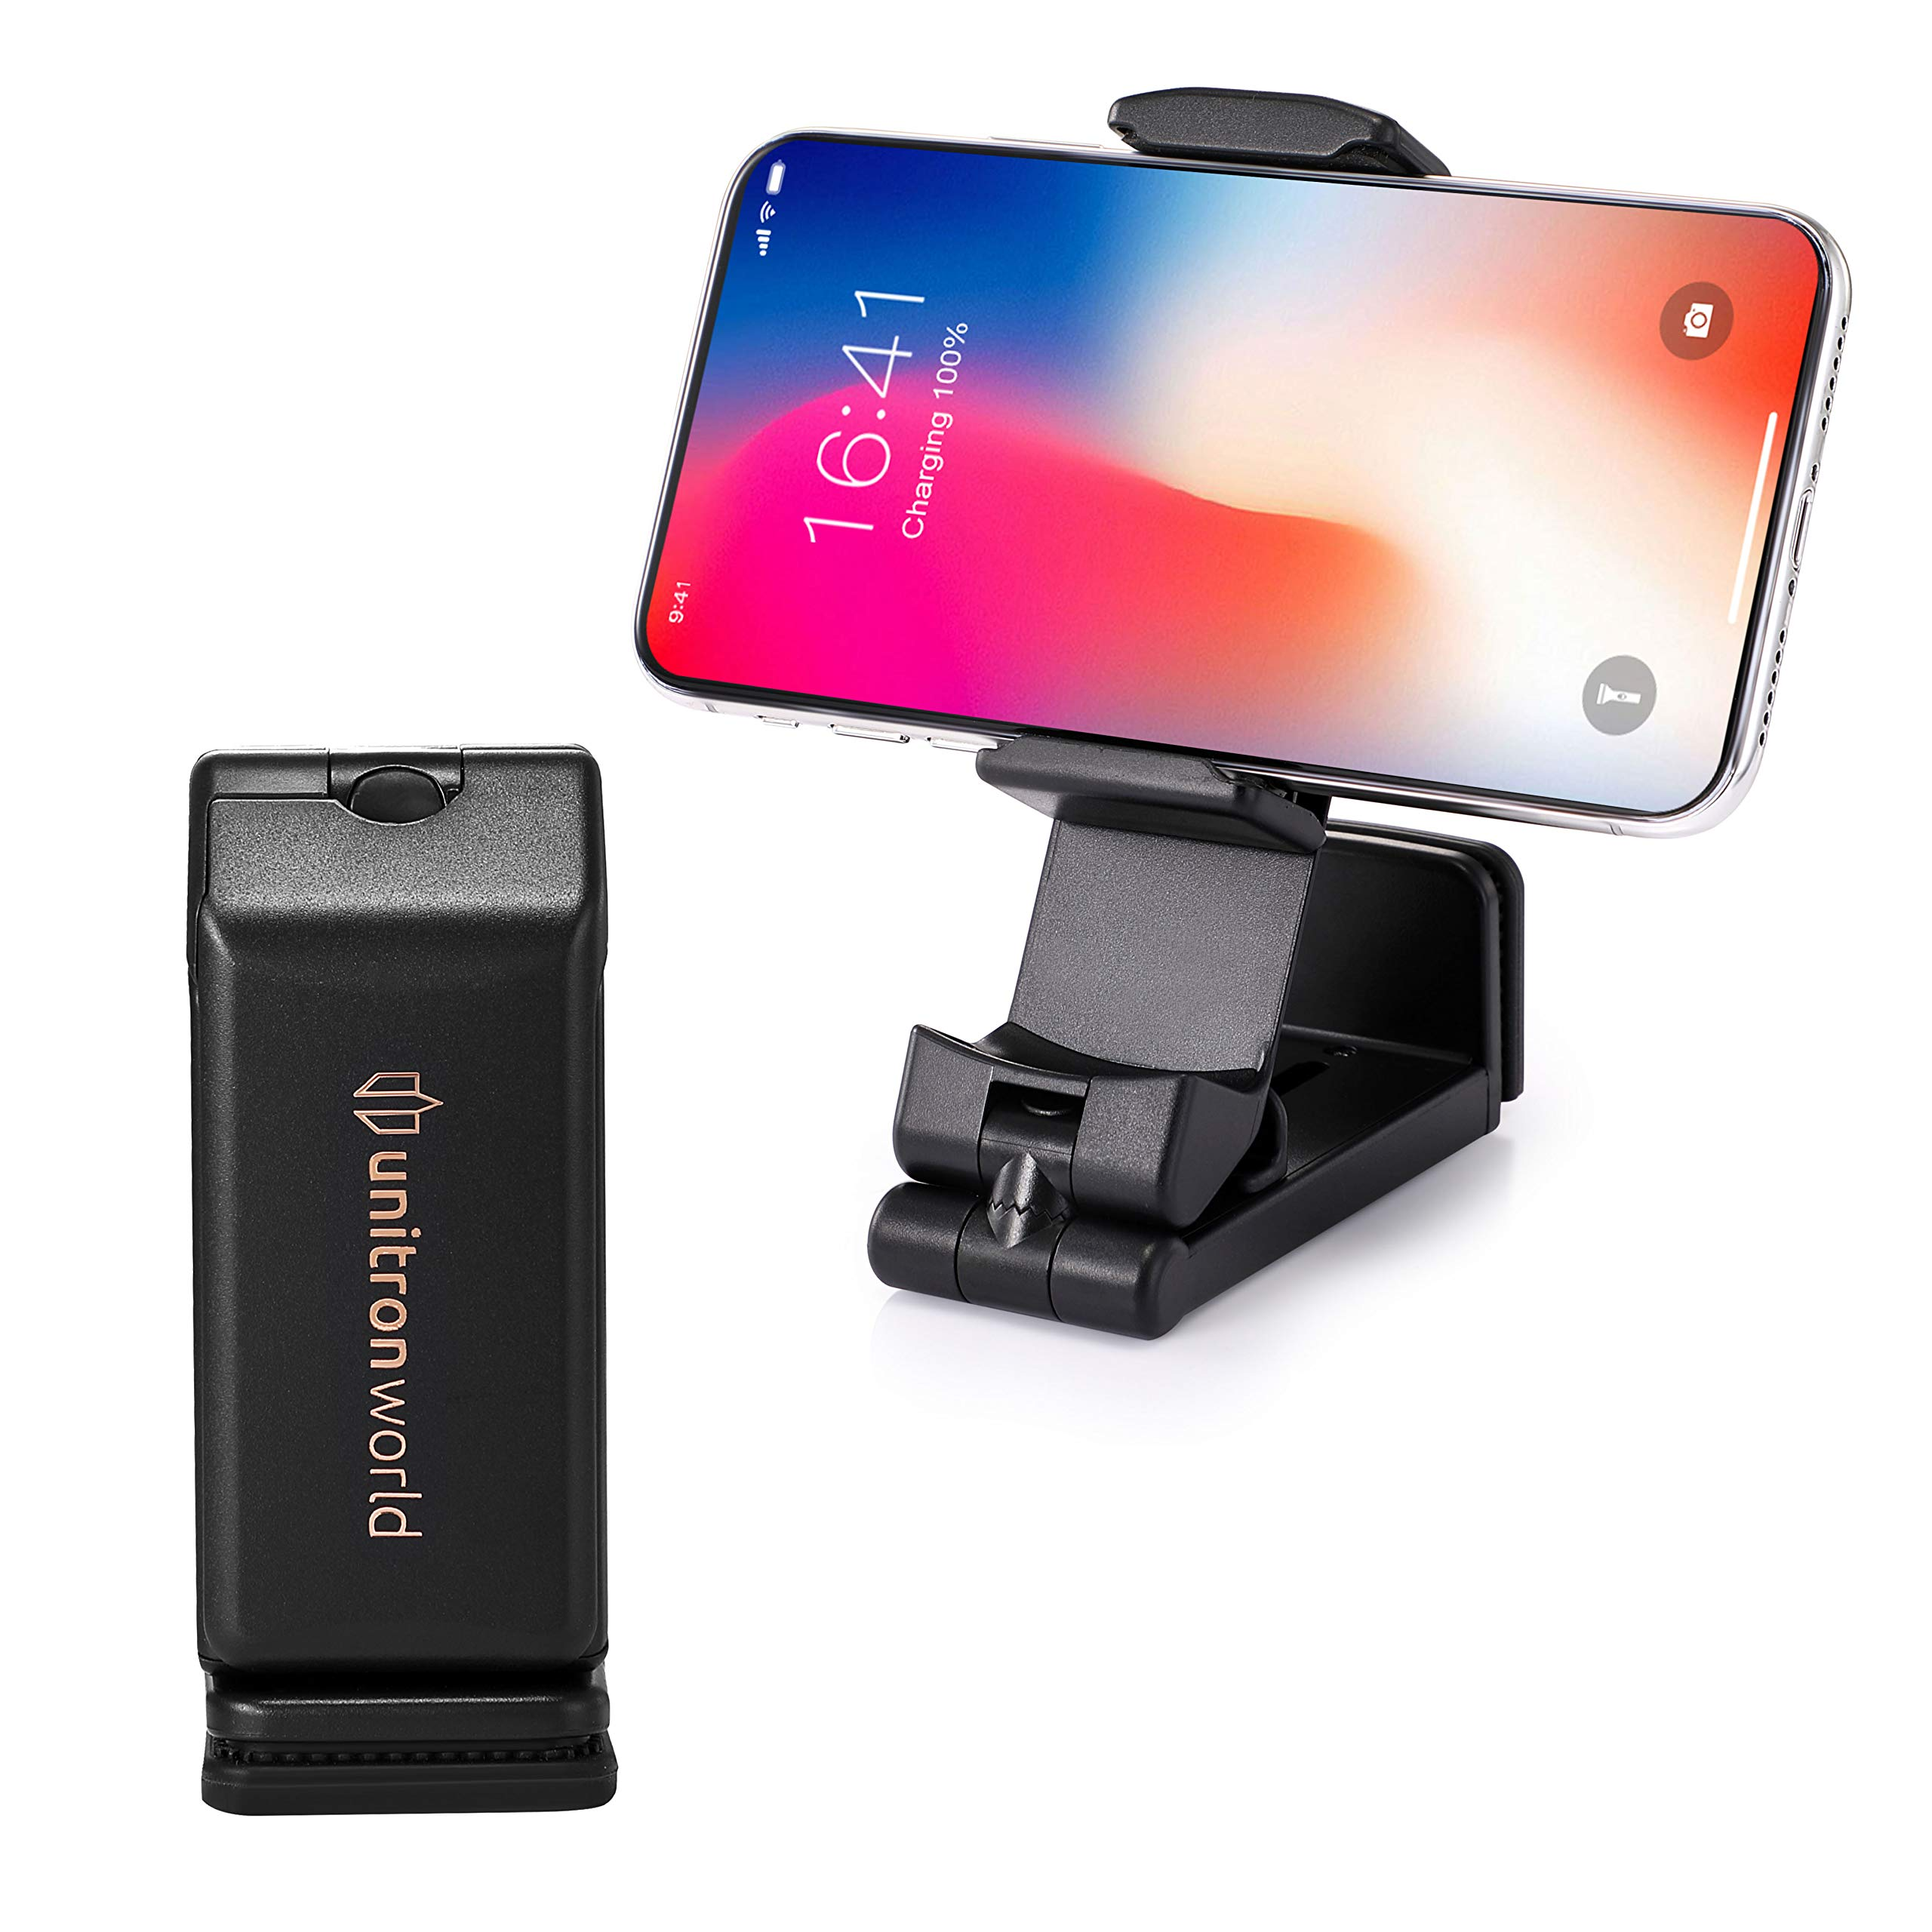 unitron world Airplane Flight Adjustable Mobile Portable Phone Stand Clamp Holder Mount 360 Rotating Bracket Compatible with iPhone Xs MAX XR X 8 7 6 and Android Phones and More for Desk Bed Kitchen by unitron world